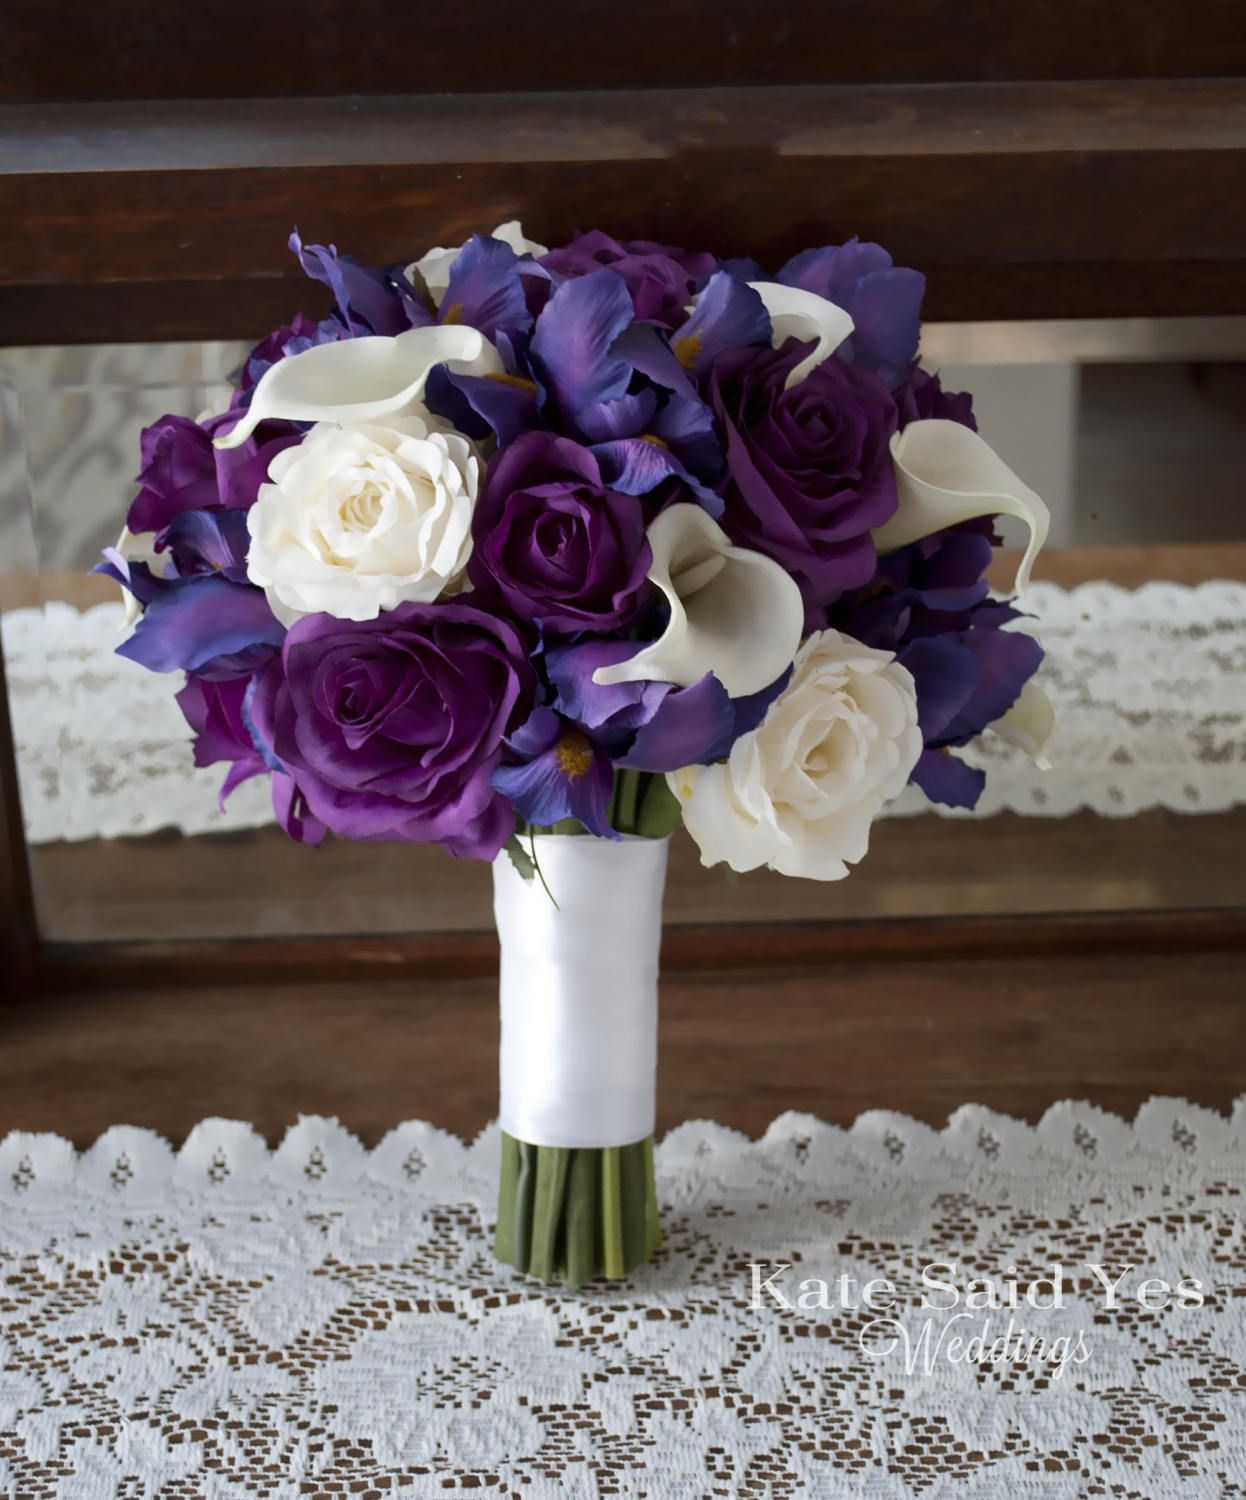 Wedding Bouquets Not Flowers: Purple And Ivory Iris Rose And Calla Lily Wedding Bouquet